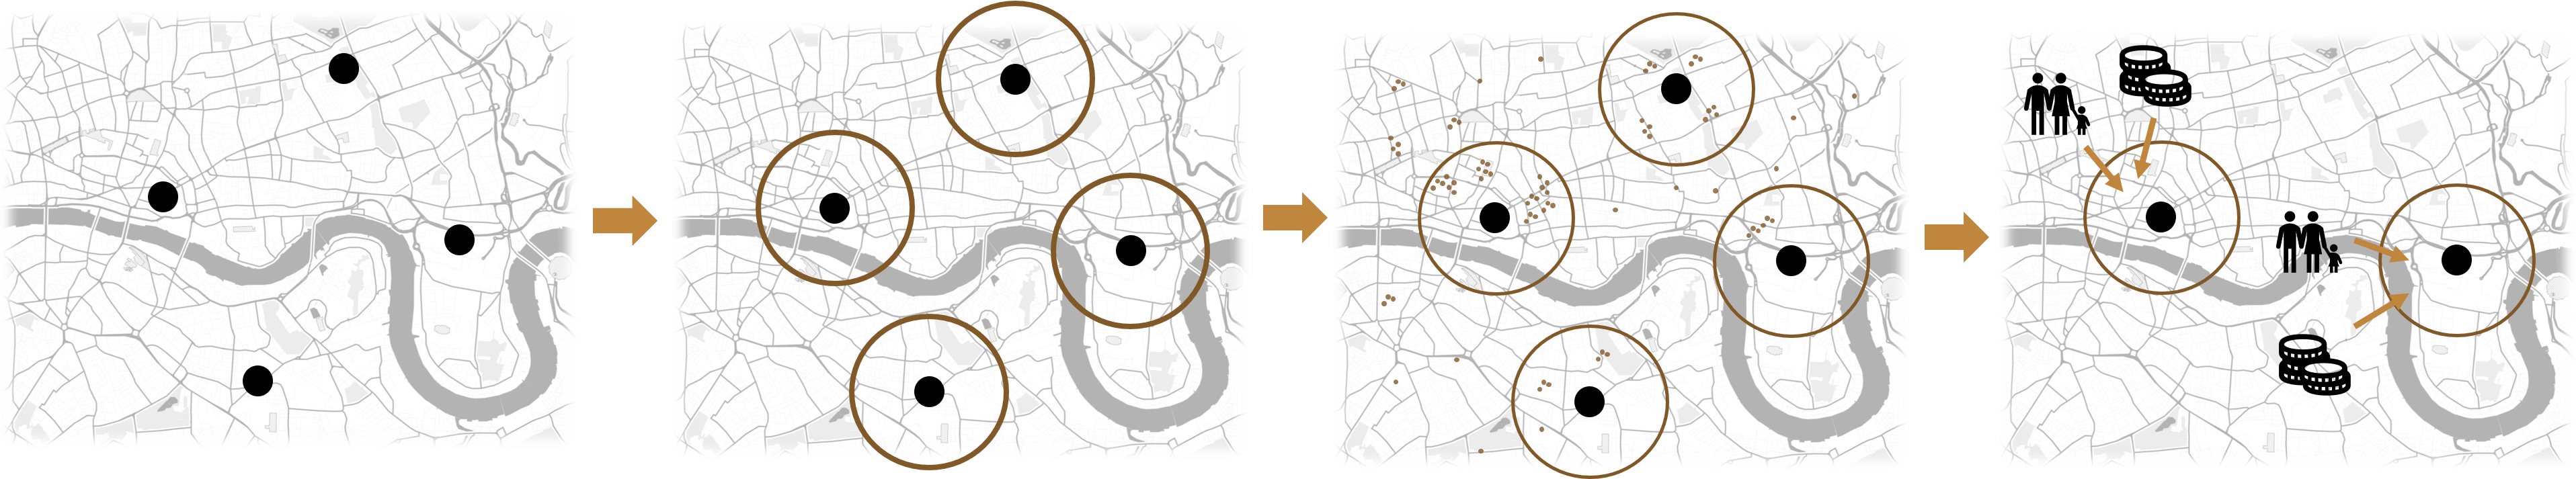 Spatial Data Science Applied: ArcPy & Scikit learn for